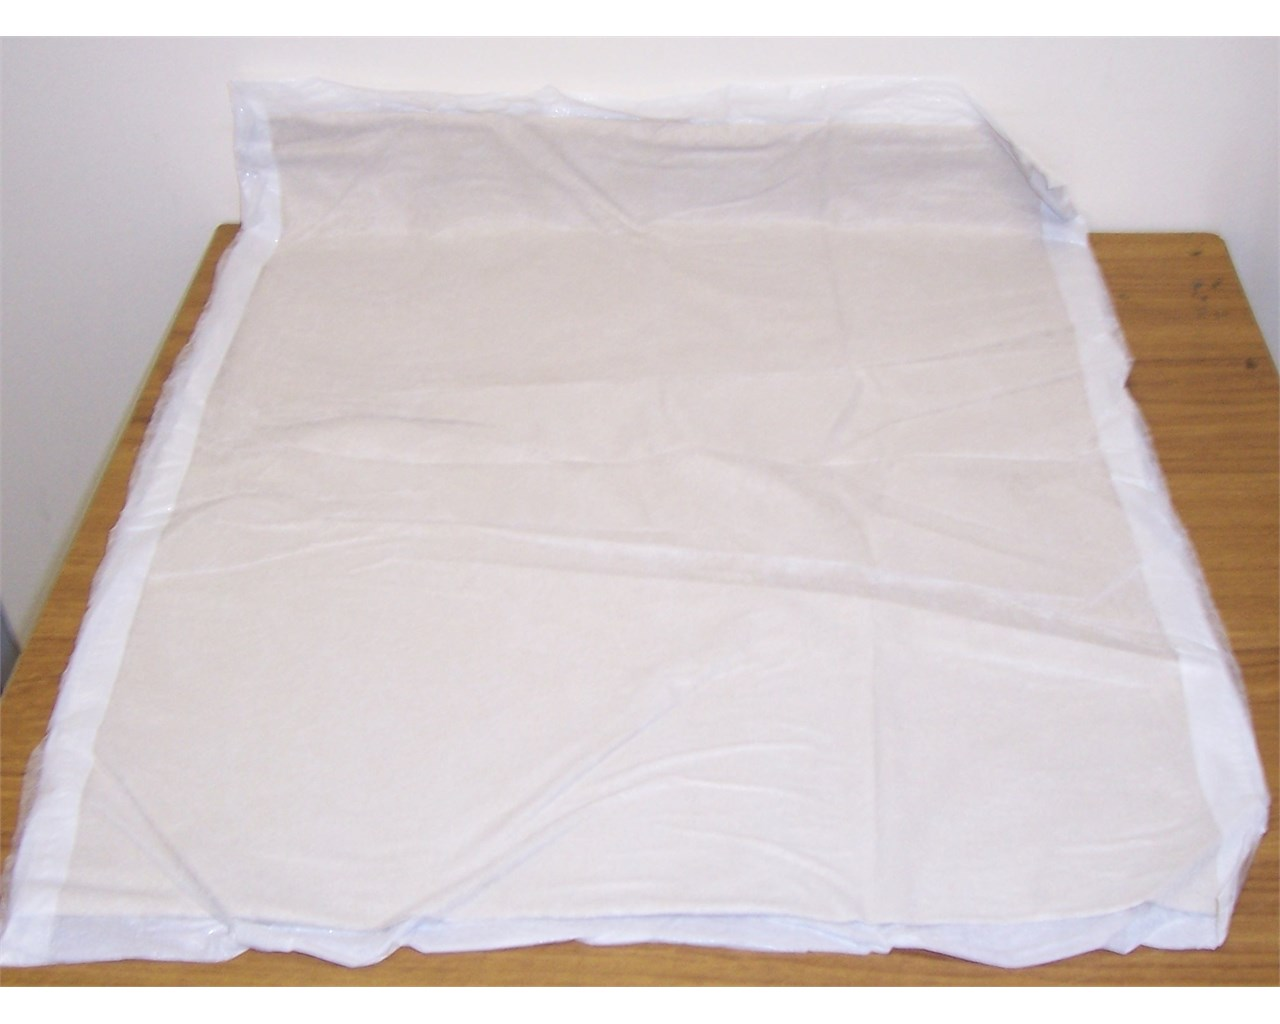 Inco Pads Incontinence Bed Sheets 100 Pads Direct